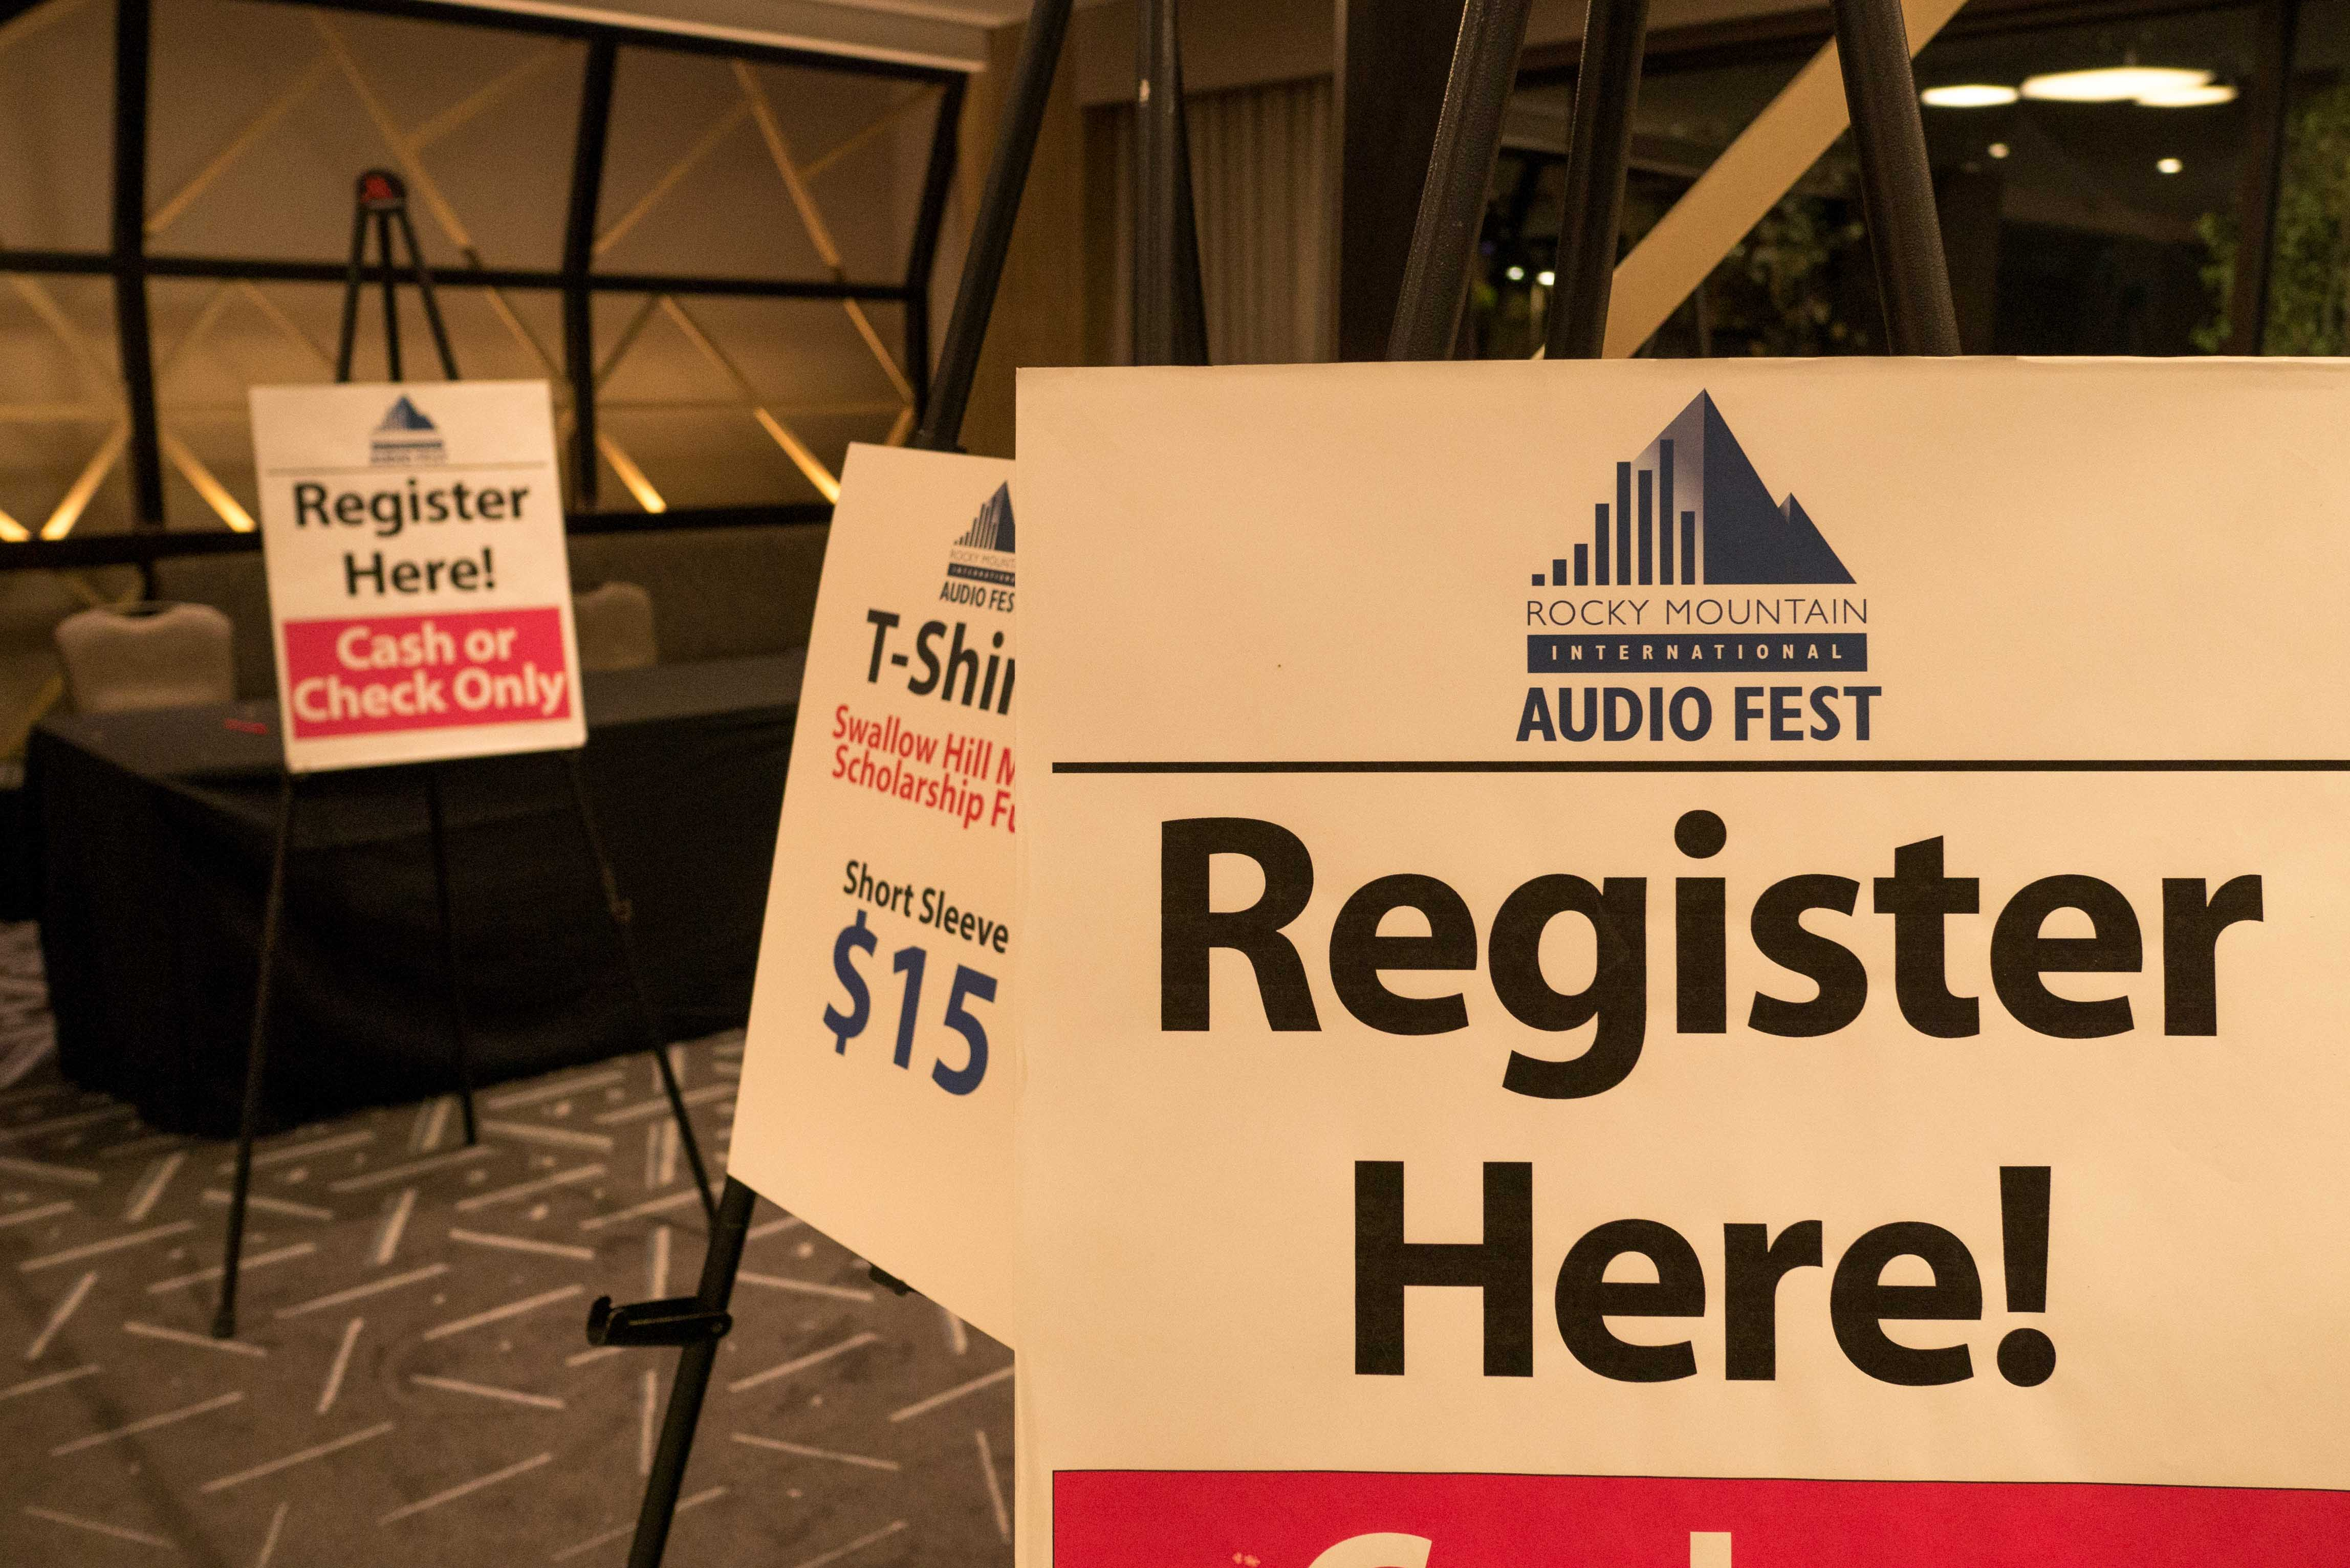 http://audiophilereview.com/images/rmaf2016-2-small-2.jpg